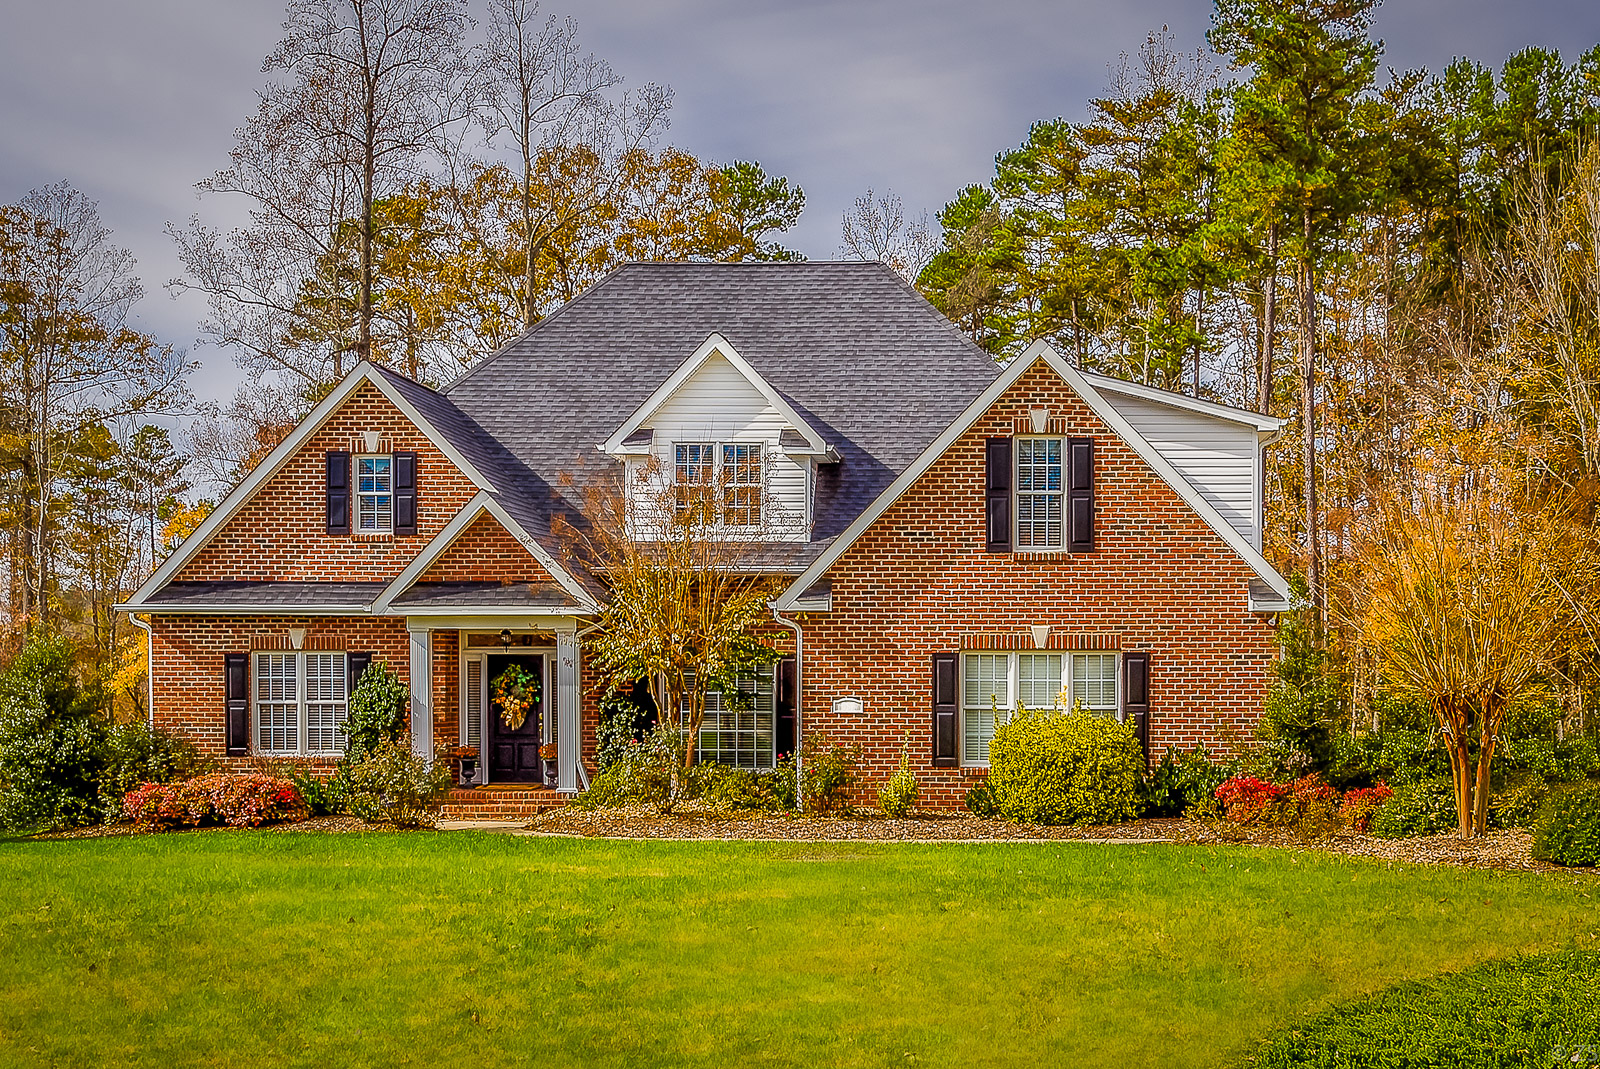 Brick House - This design is characterized by strong and robust architectural style. Brick homes feature either full brick walling or veneer brick work over timber framing. This is a classic American home.